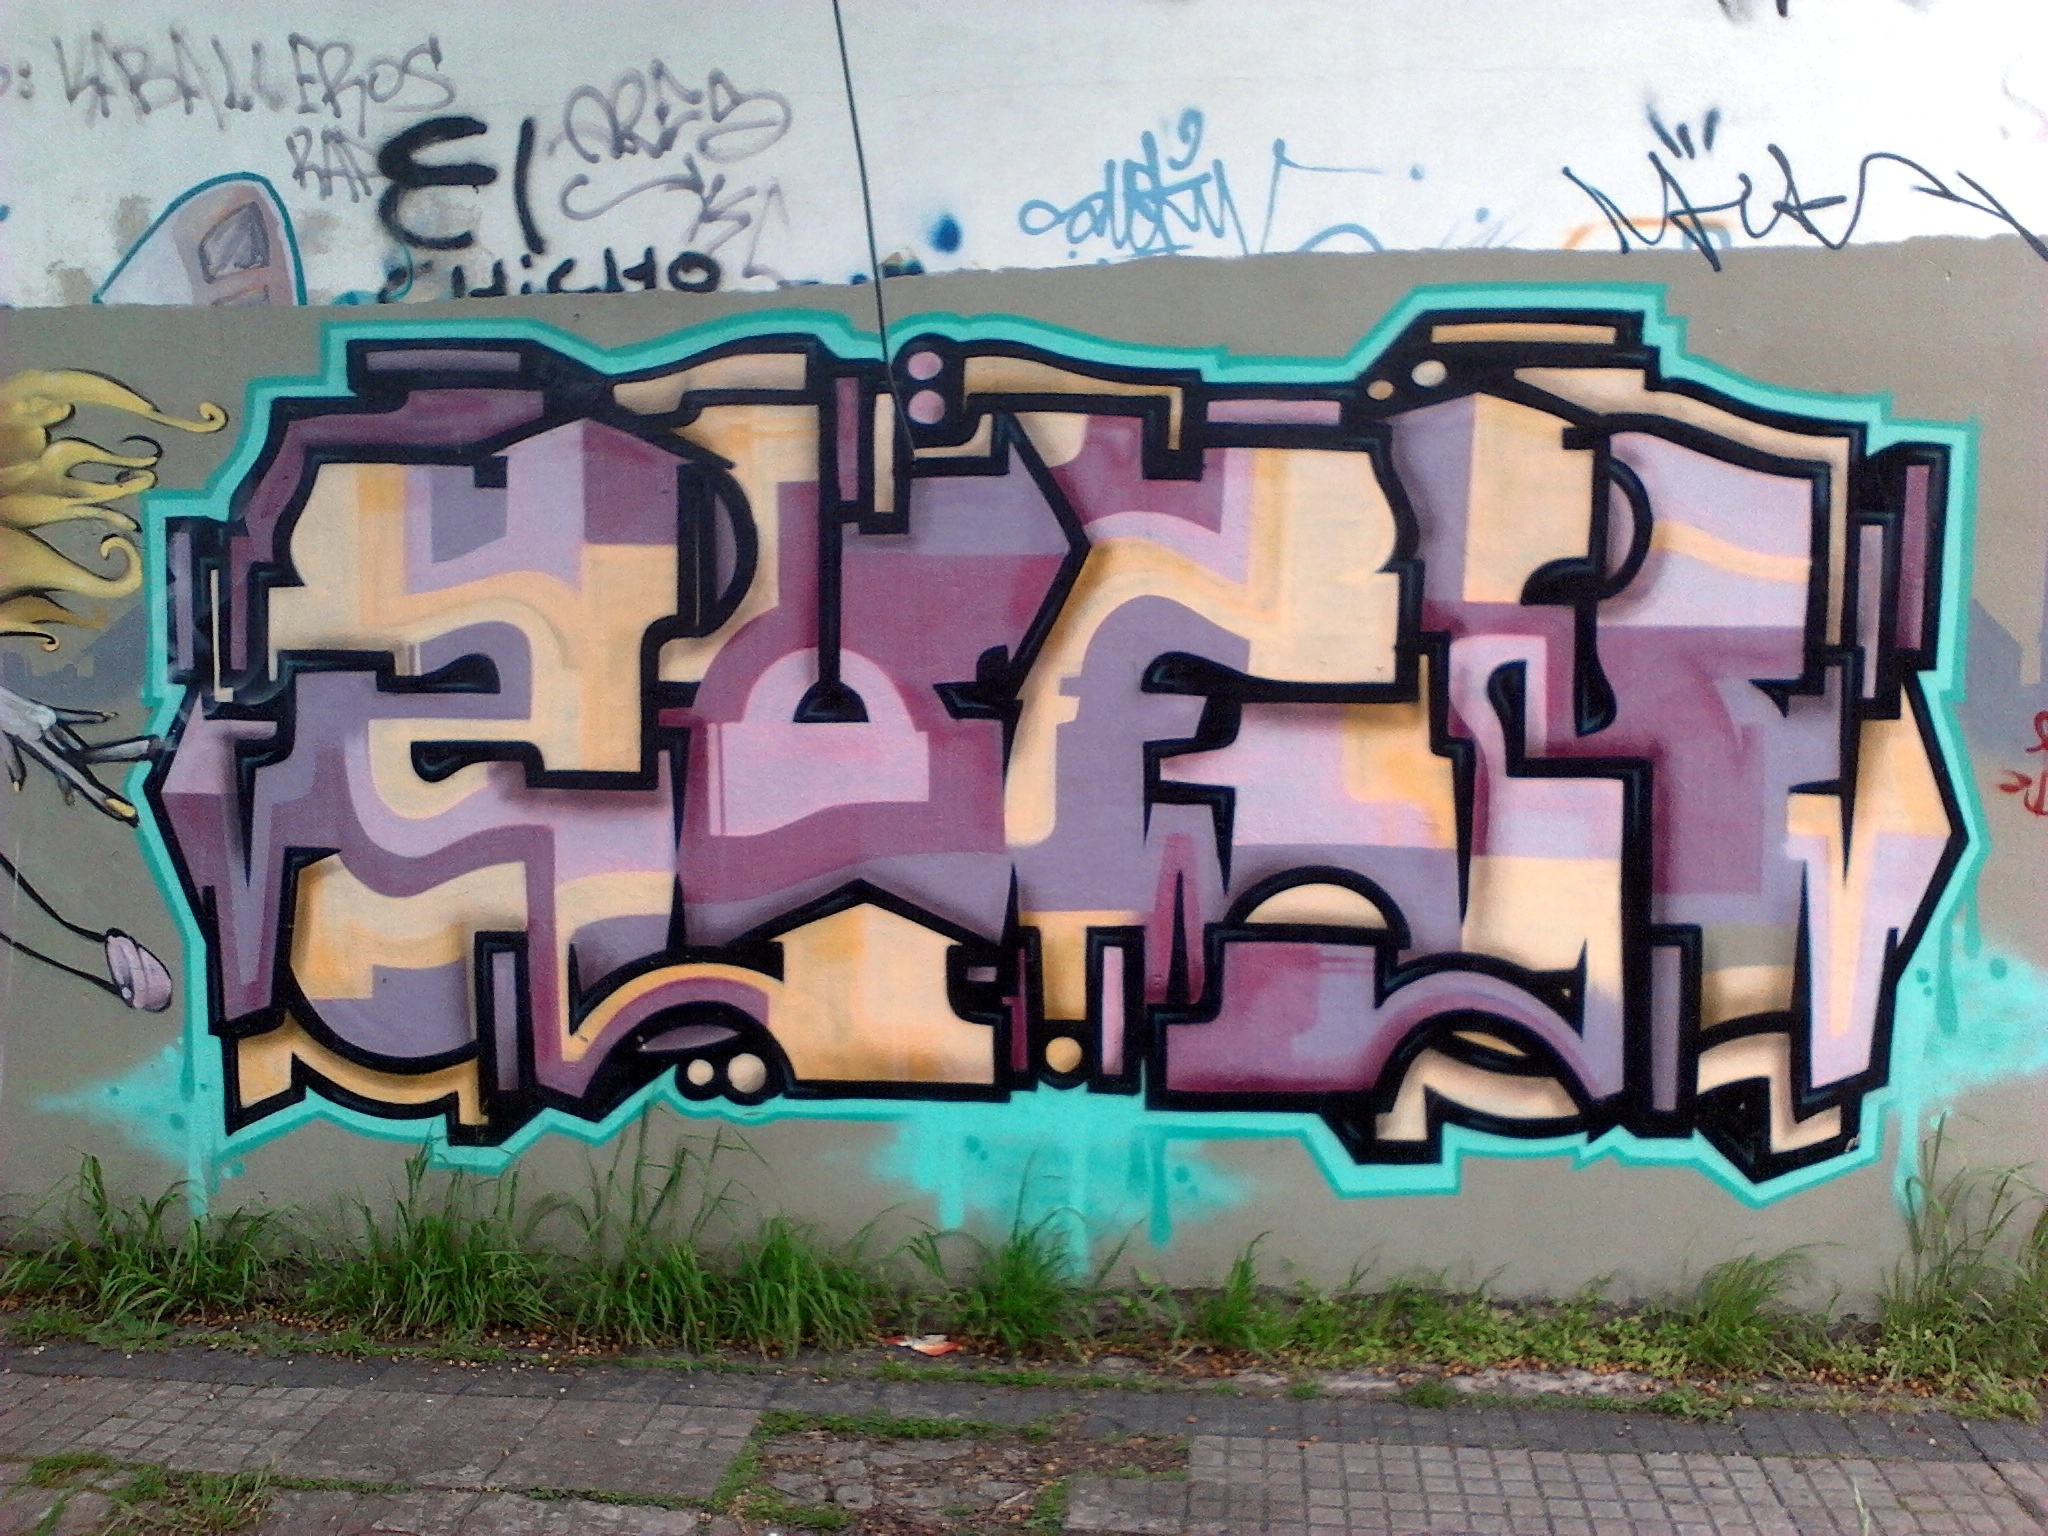 File:Tagger cubista.jpg - Wikimedia Commons